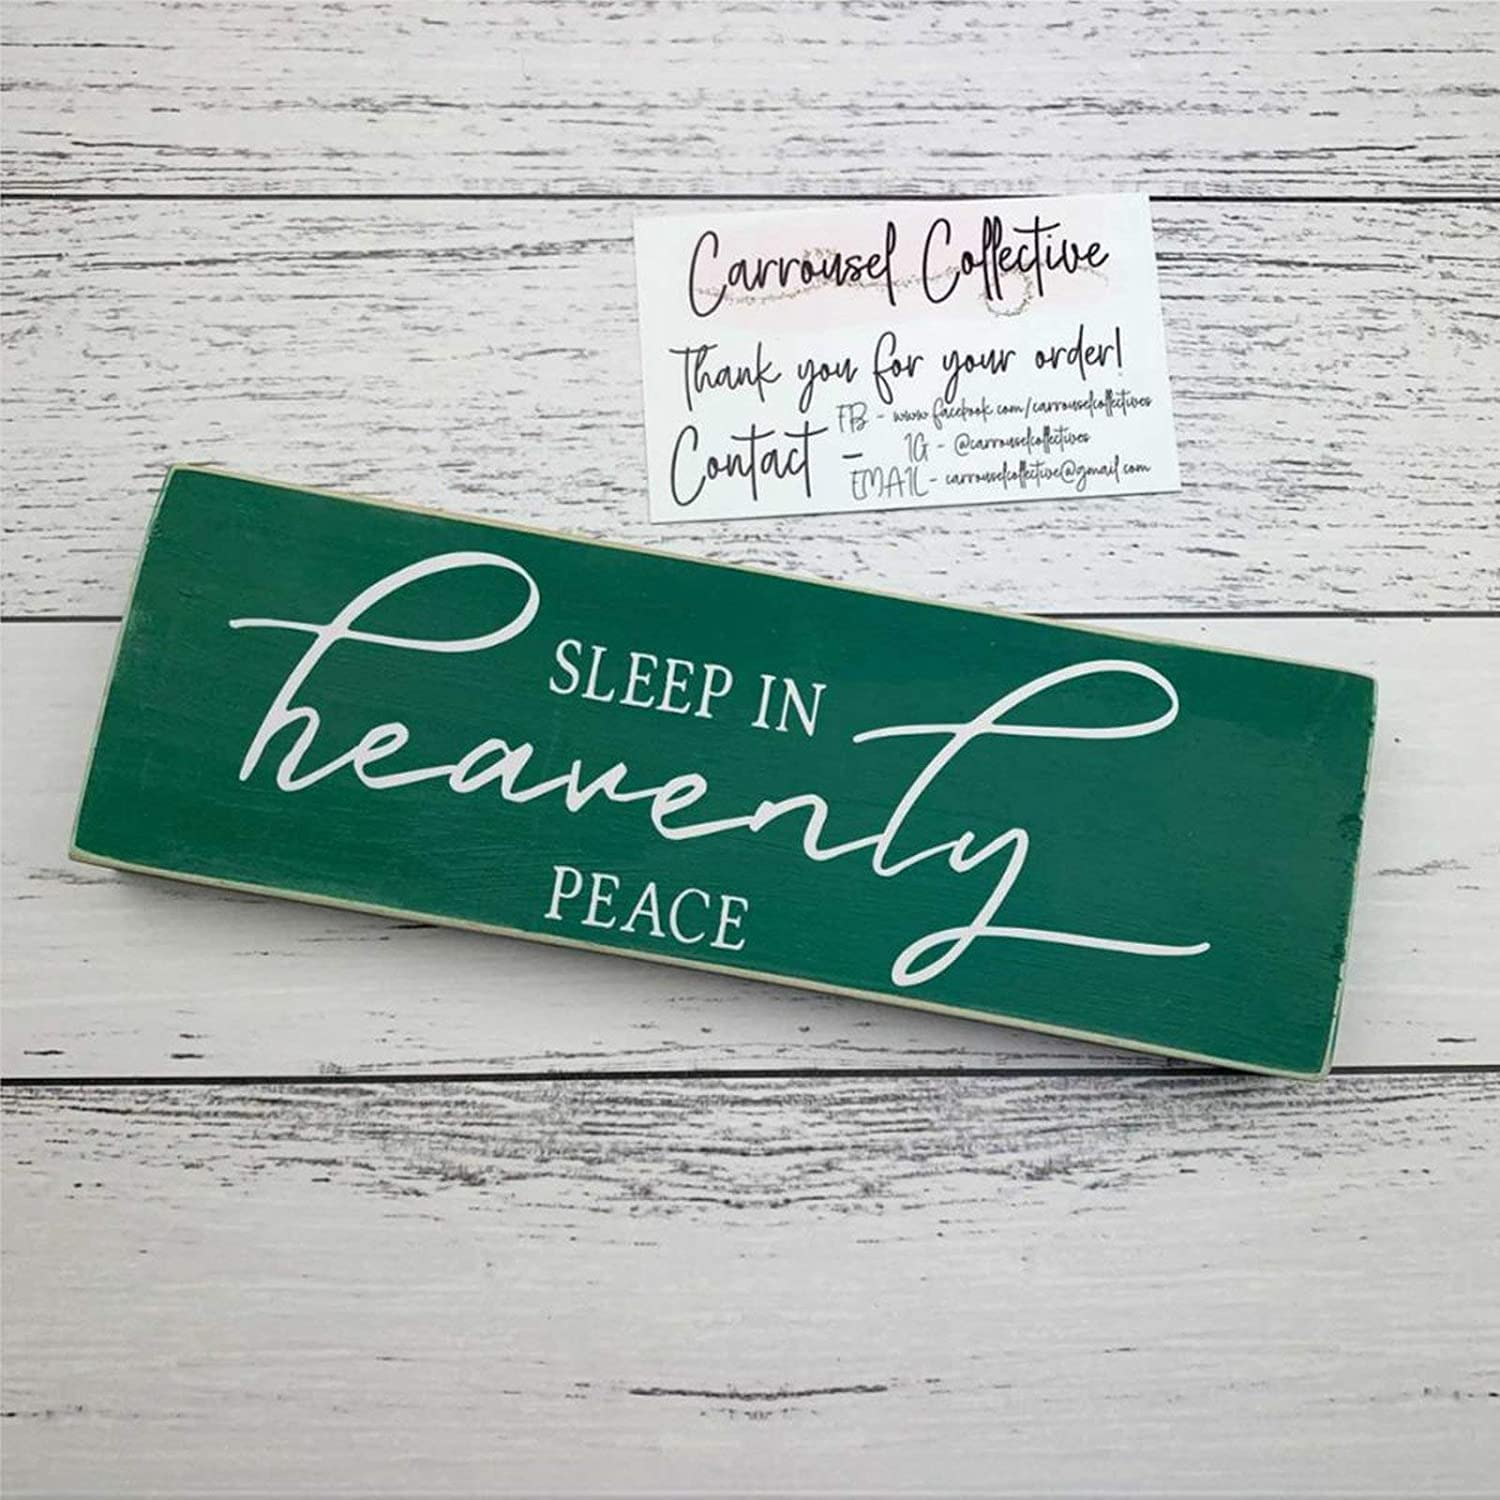 43LenaJon Sleep in Heavenly Peace Christmas Wood Wall Decor Sign,Custom Wood Sign,Wooden Plaque Art for Easter, Father's Day,Mother's Day,Home,Gardens.